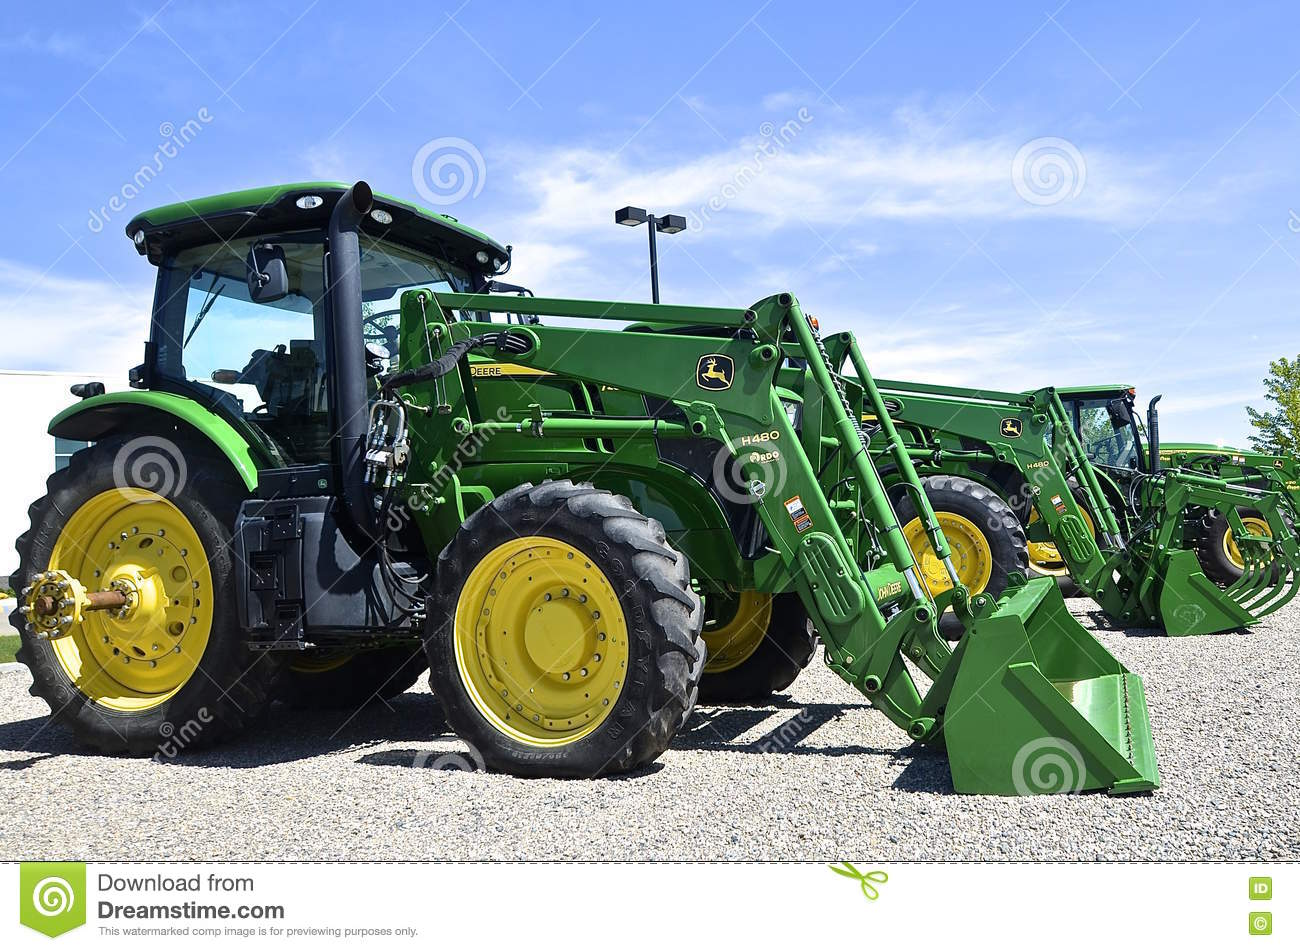 new john deere tractor and front end loader editorial stock image